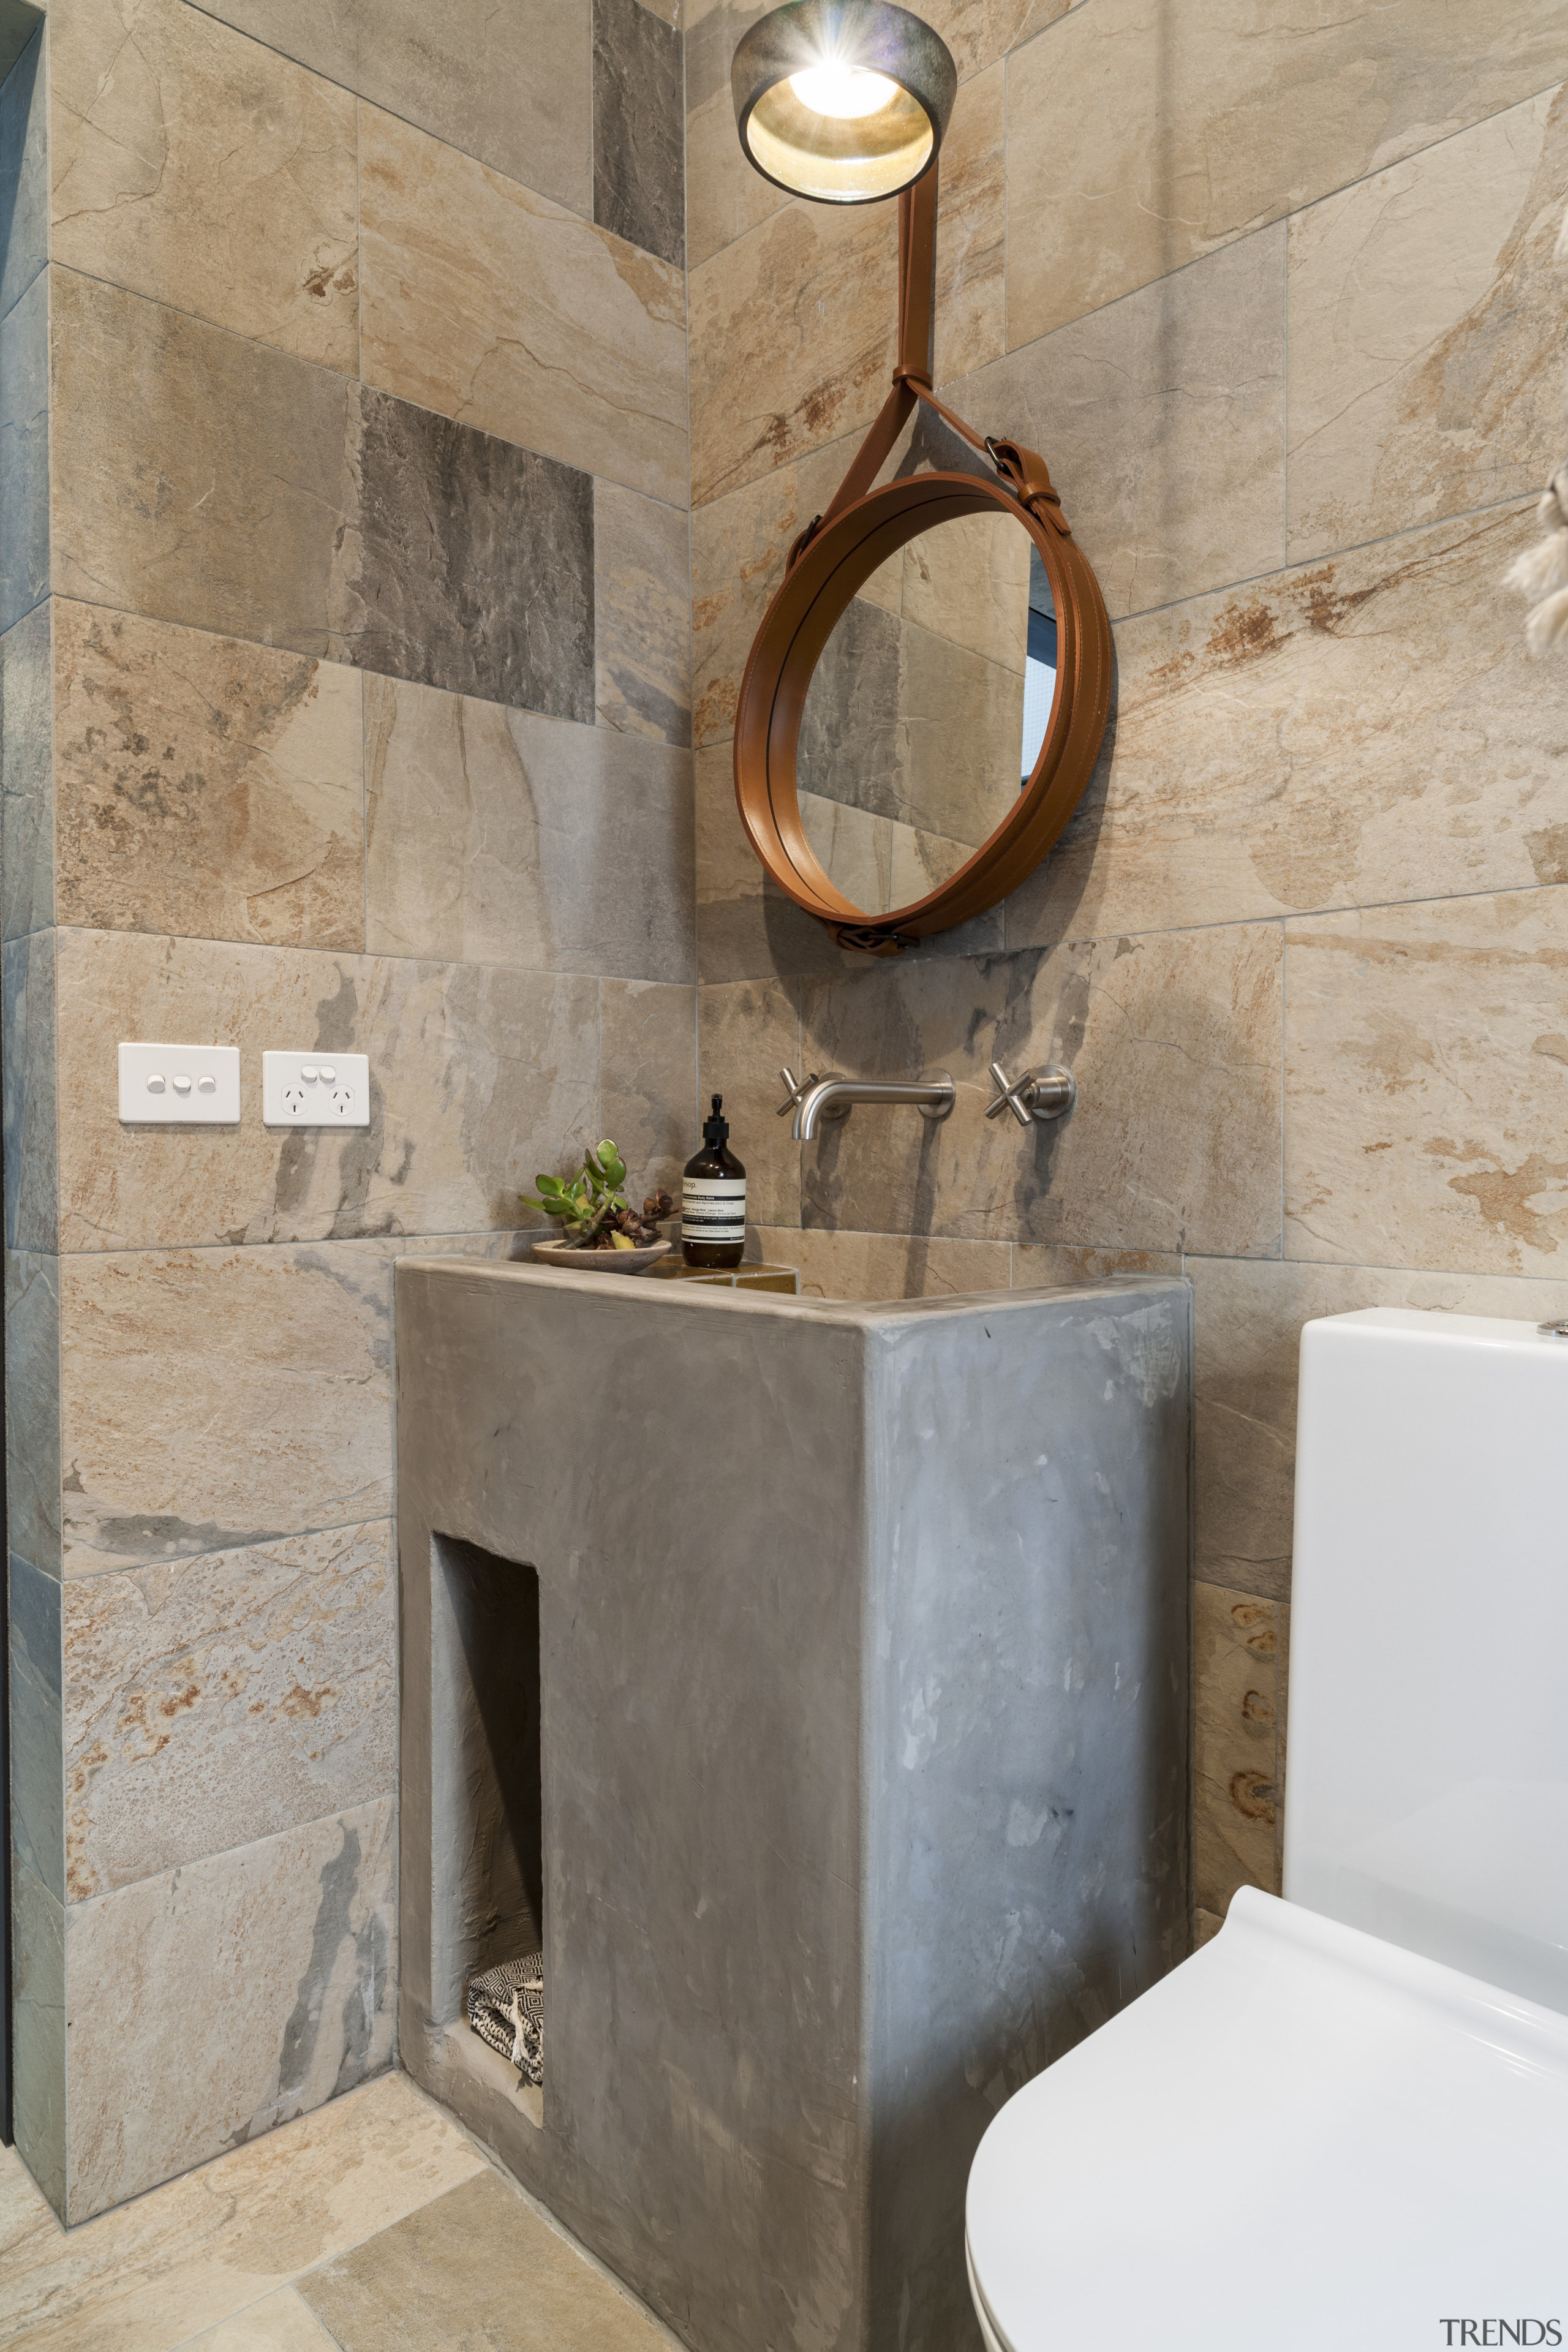 The powder room in this remodelled house features bathroom, ceramic, floor, plumbing fixture, sink, tap, tile, gray